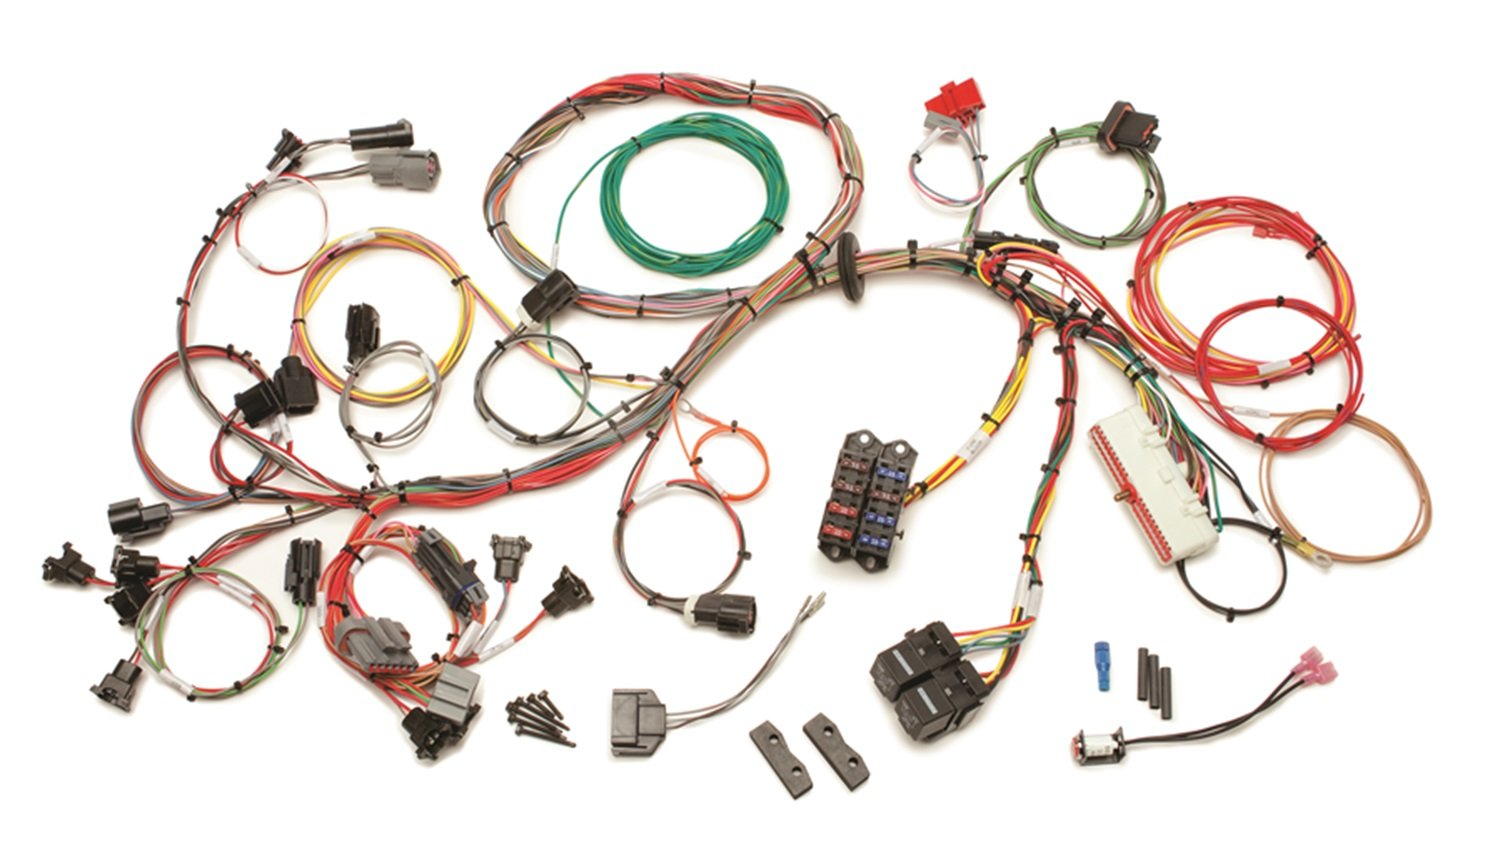 71UX1IBfleL._SL1500_ amazon com painless 60510 5 0l wiring harness automotive fuel injector wiring harness at aneh.co